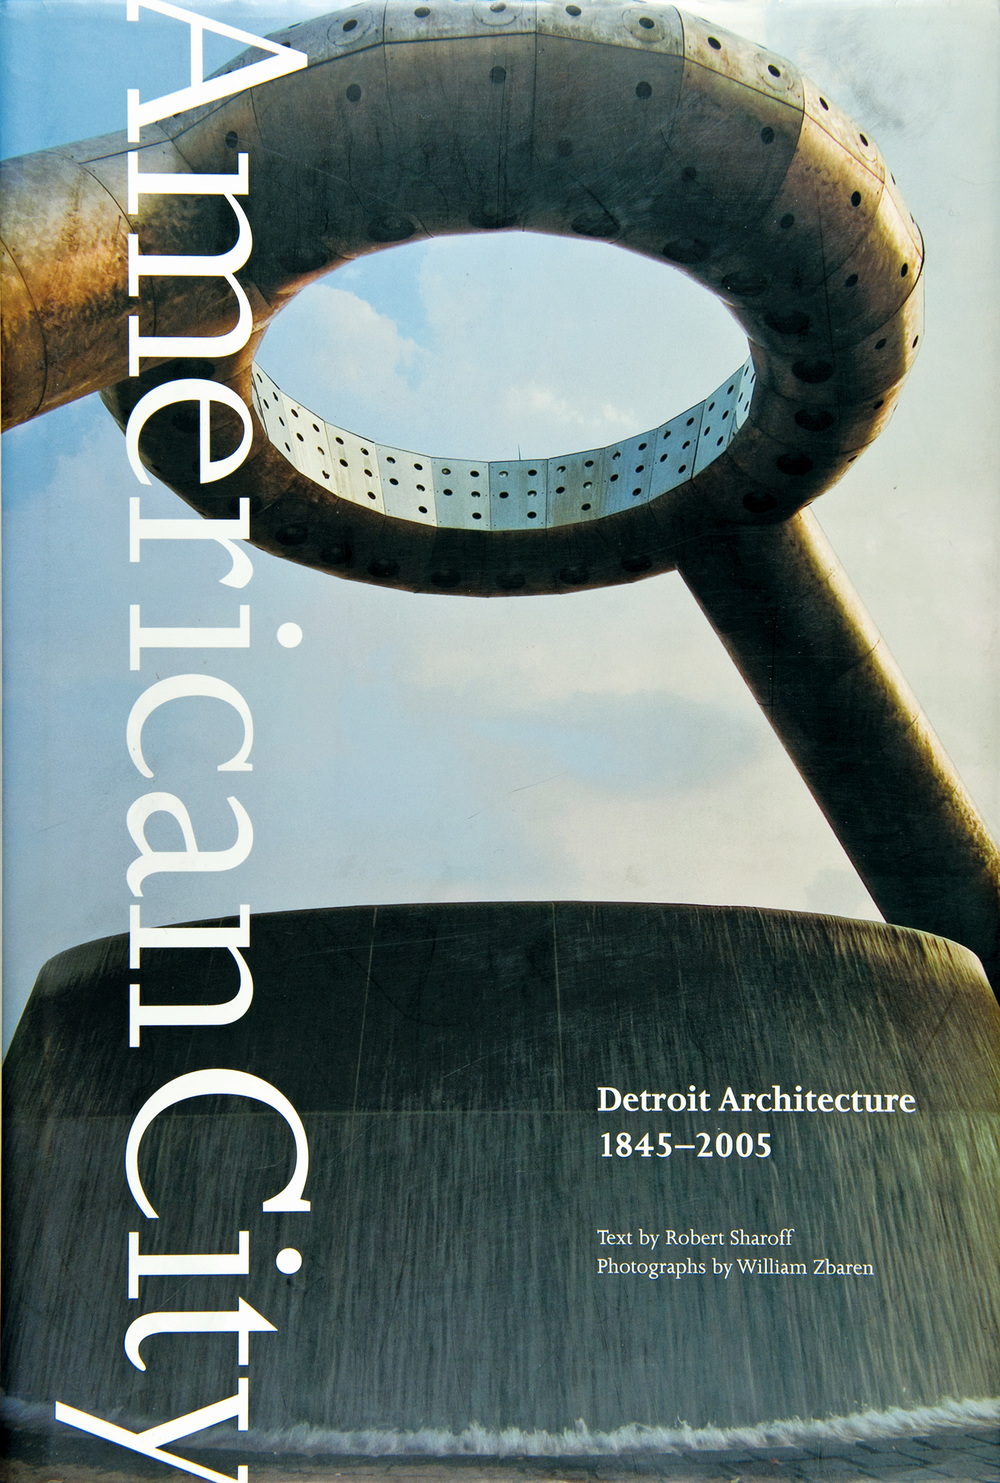 """American City: Detroit Architecture 1845-2005"" / Photographs by Bill Zbaren / Text by Robert Sharoff / Published by the Wayne State University Press"